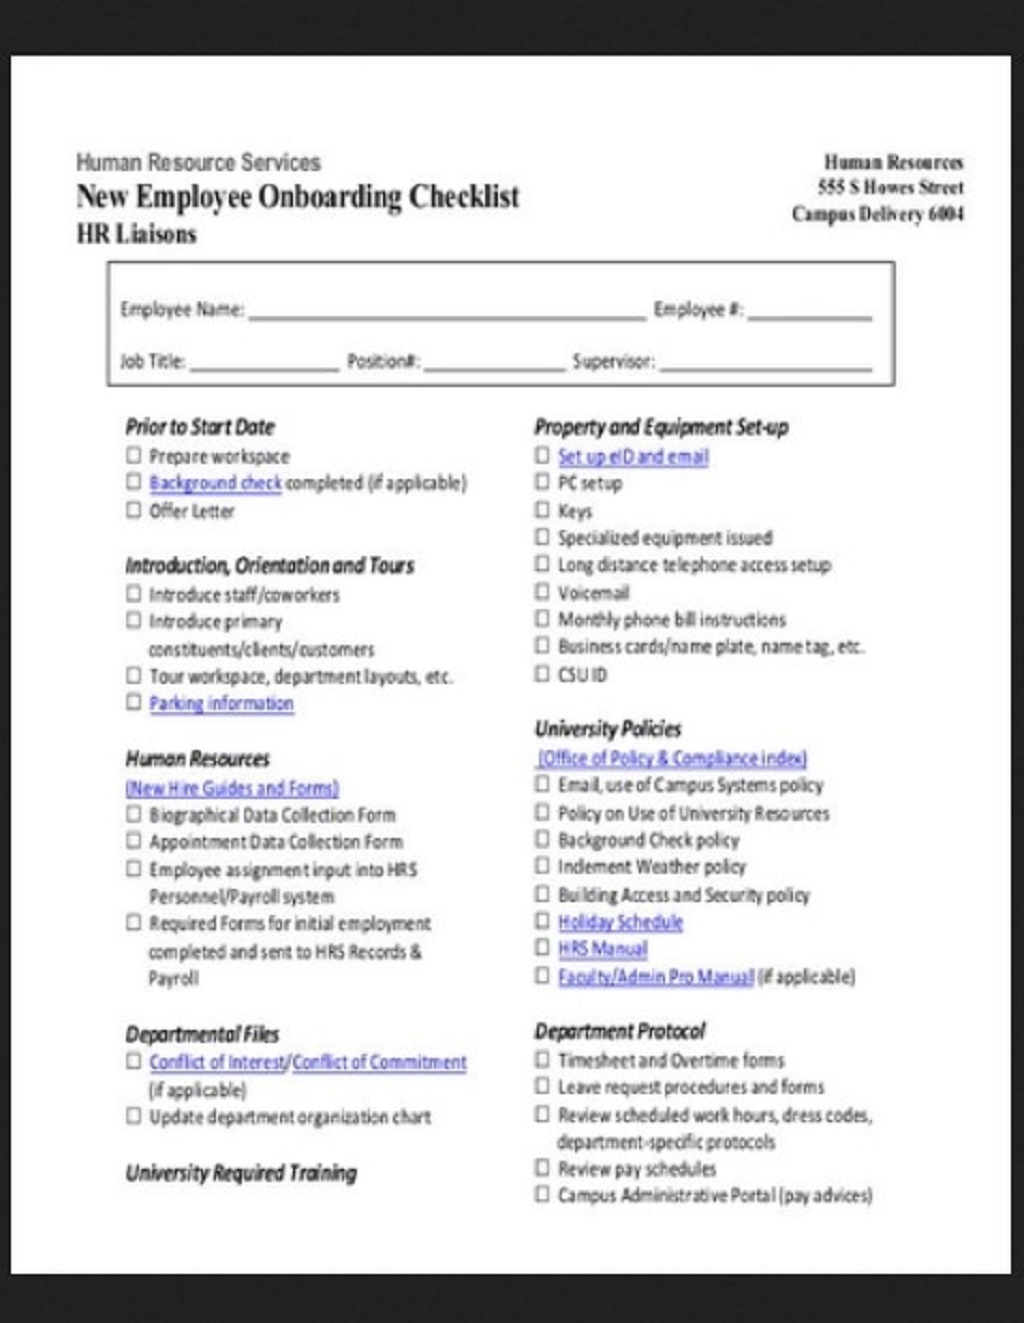 HR Employee Onboarding Checklist Template Example Form Hr Daily For Audit Strategies Startups Excel Documents  Examples Large